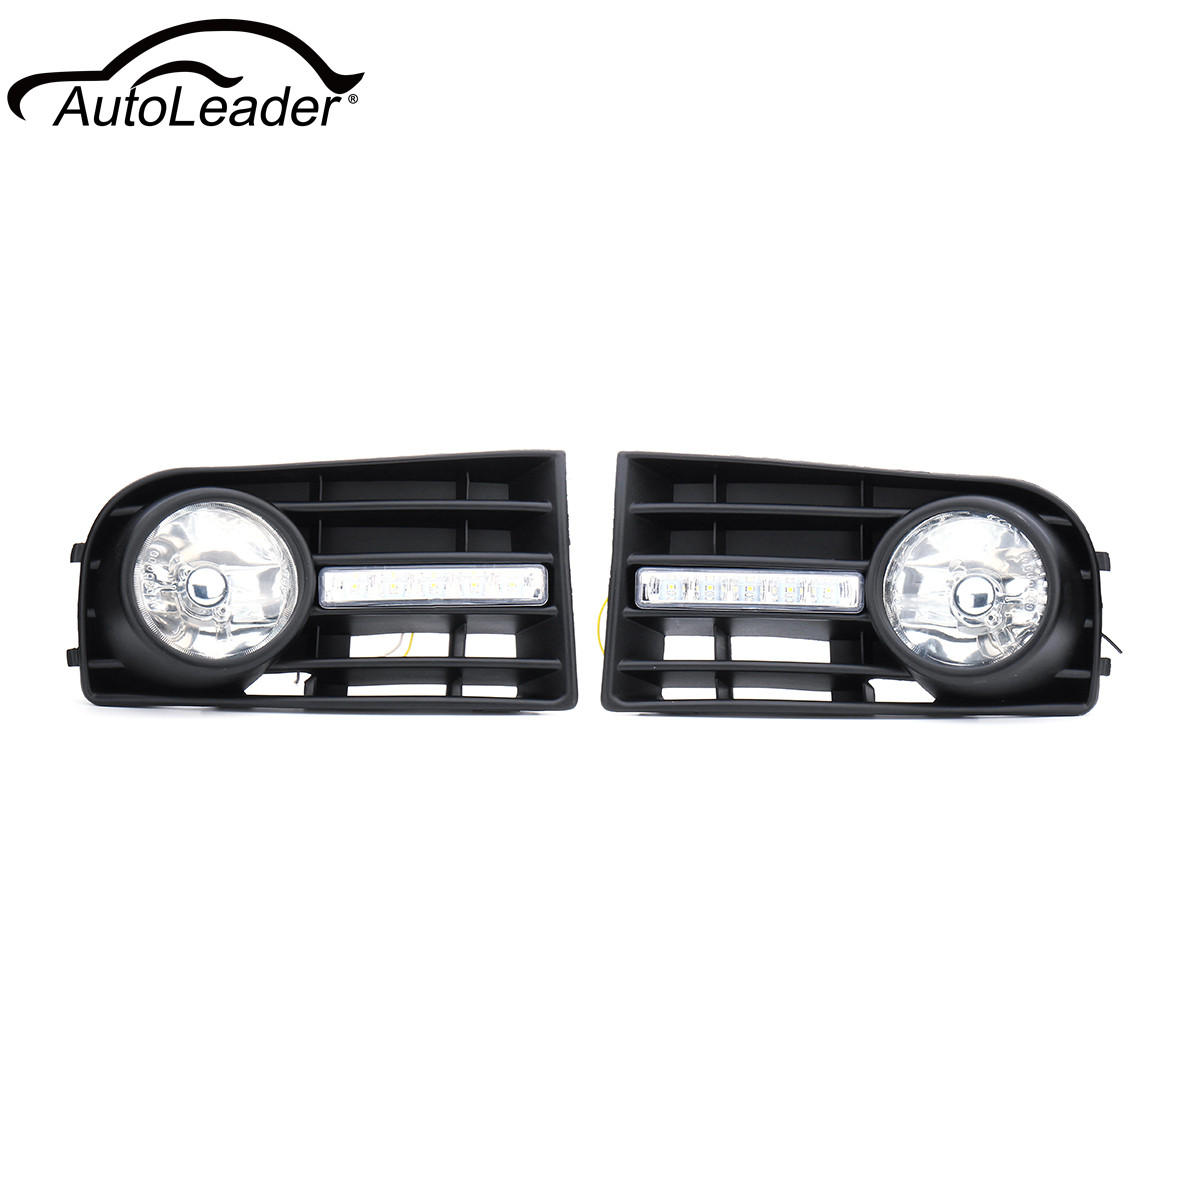 Pair Car Front DRL Fog Light Lamps Grilles + Wiring Harness Switch Fog Lamp For VW Golf 5 2006-2009 Yellow Light yuzhe leather car seat cover for mitsubishi lancer outlander pajero eclipse zinger verada asx i200 car accessories styling